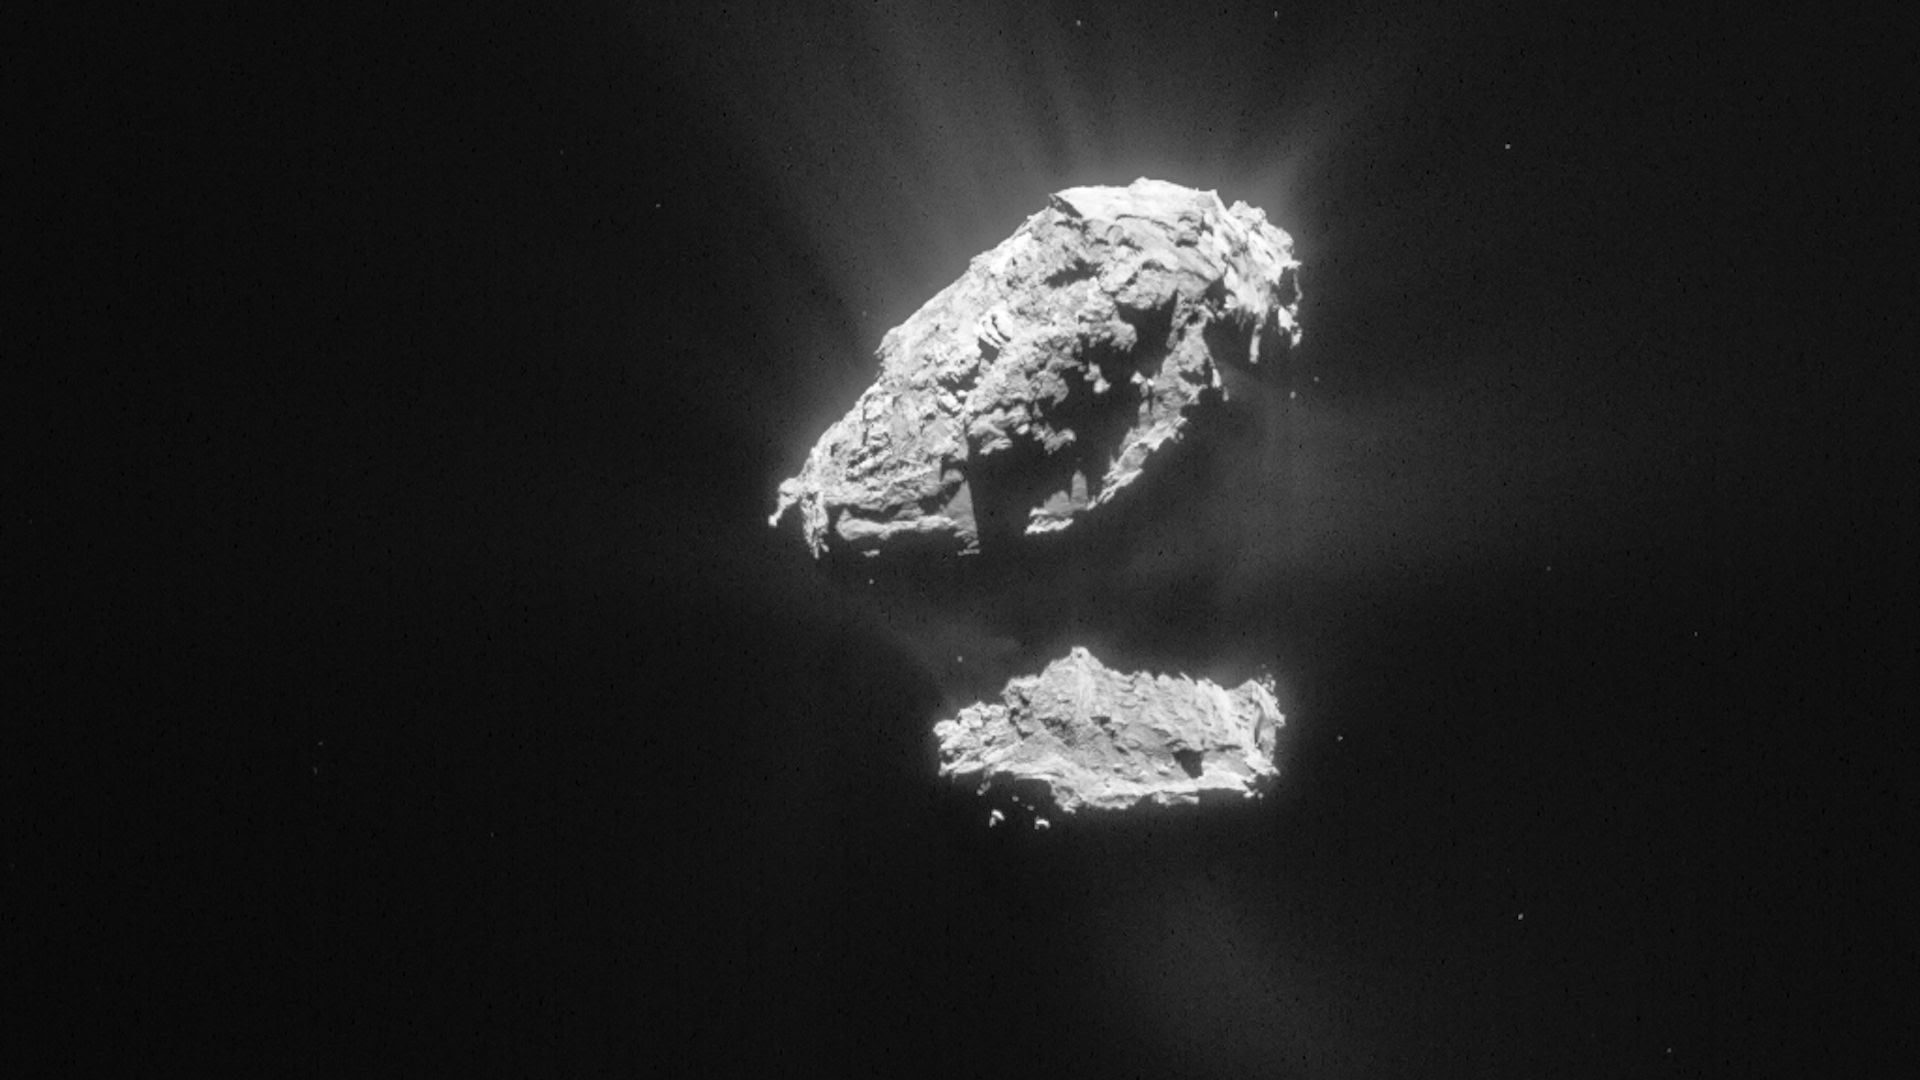 New project will try to get an up-close look of a comet in deep space